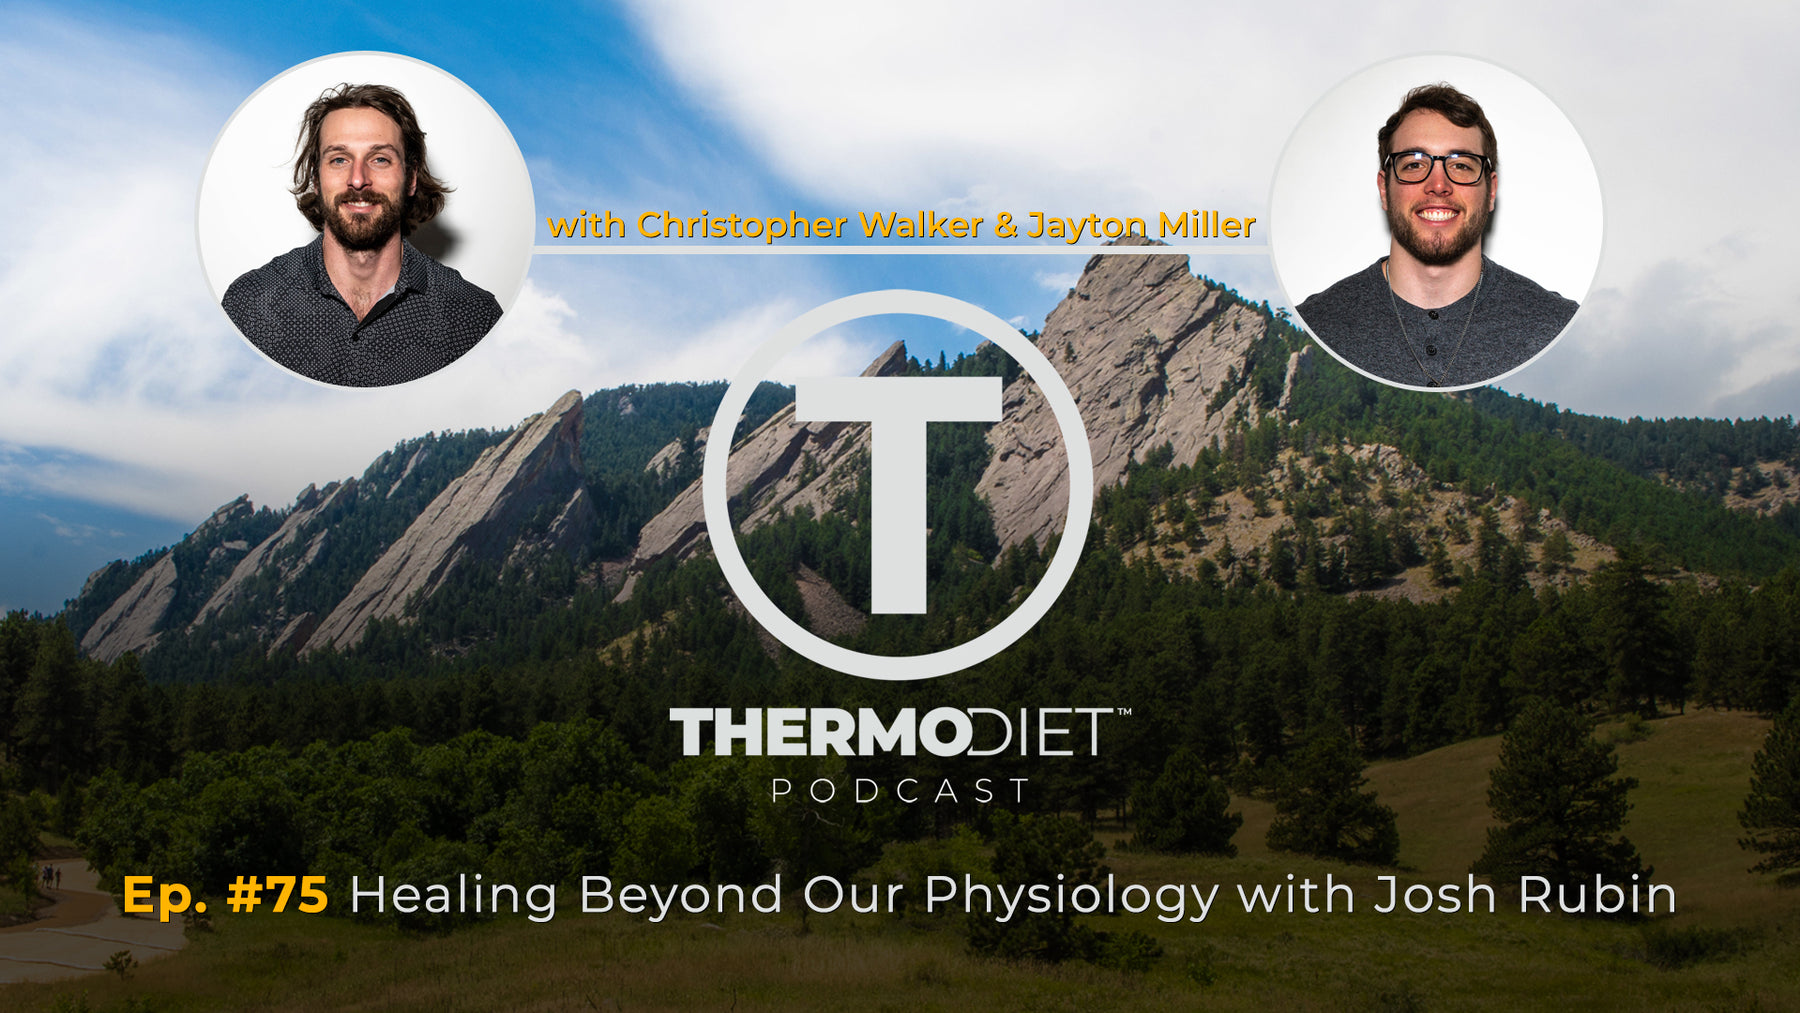 The Thermo Diet Podcast Episode 75 - Healing Beyond Our Physiology w/ Josh Rubin